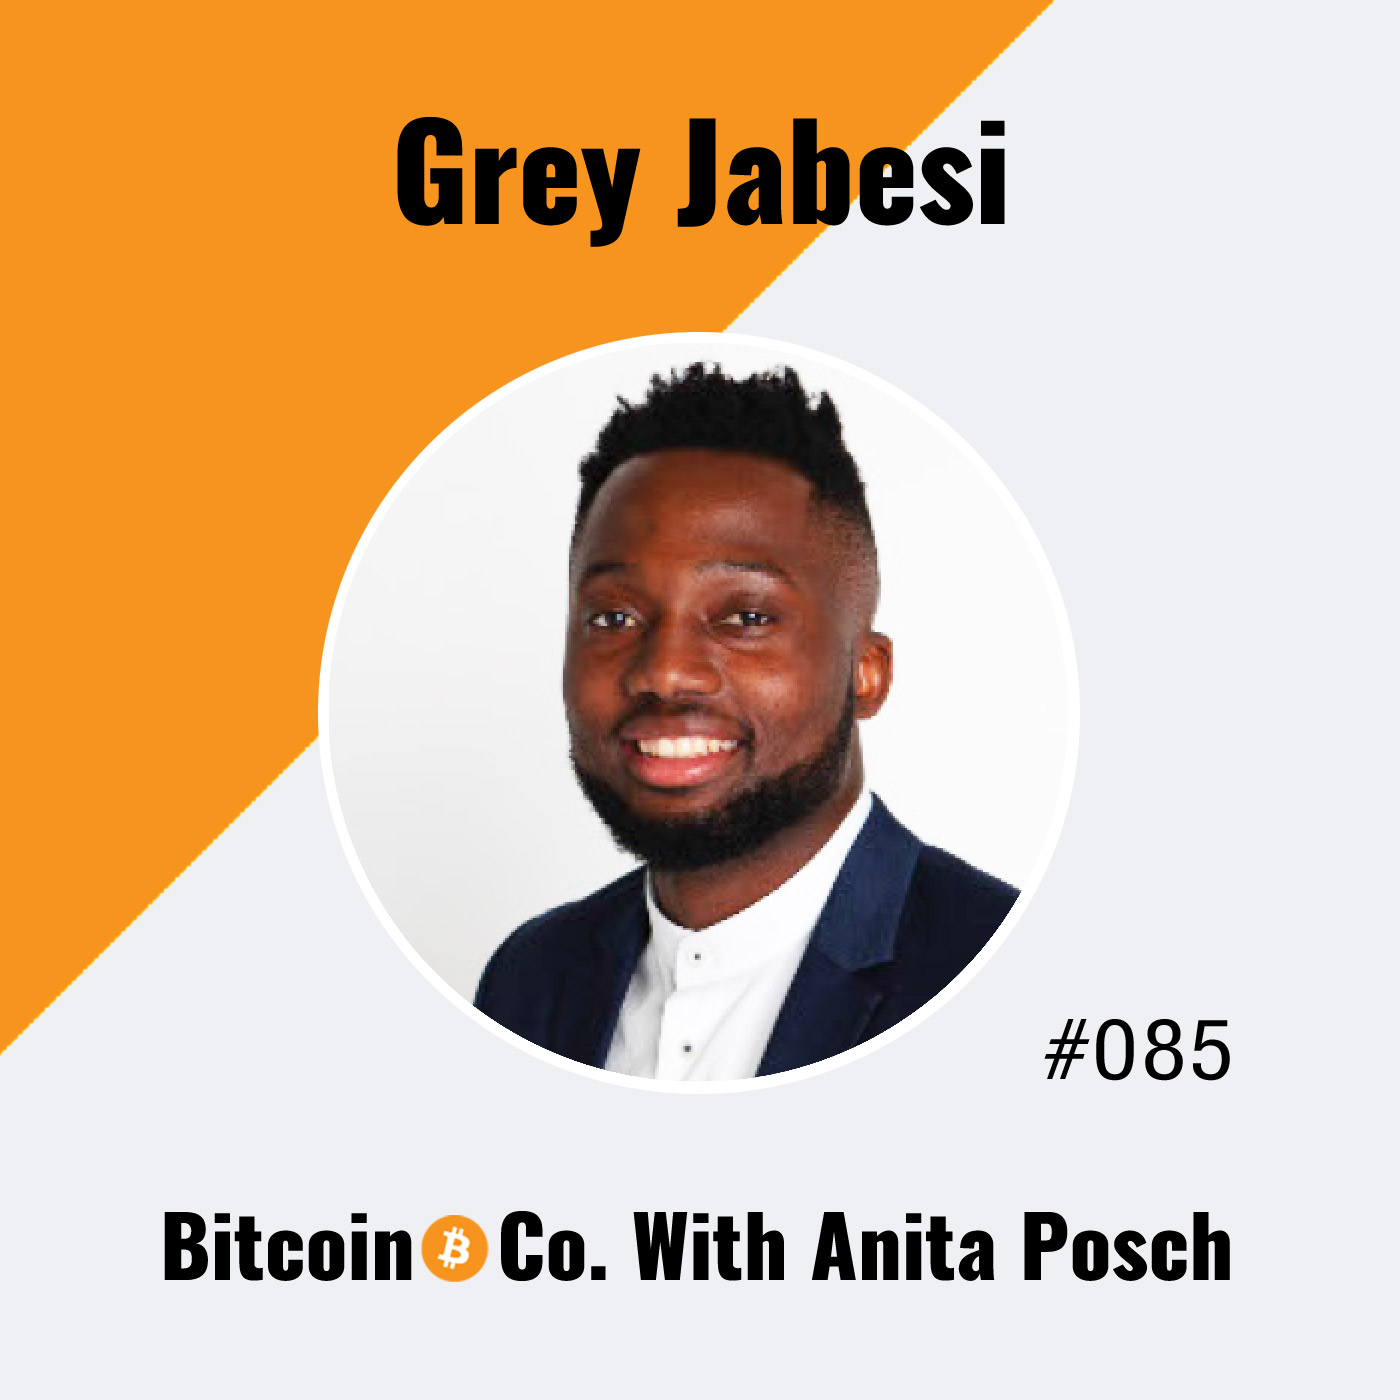 Grey Jabesi: Bitcoin in South Africa